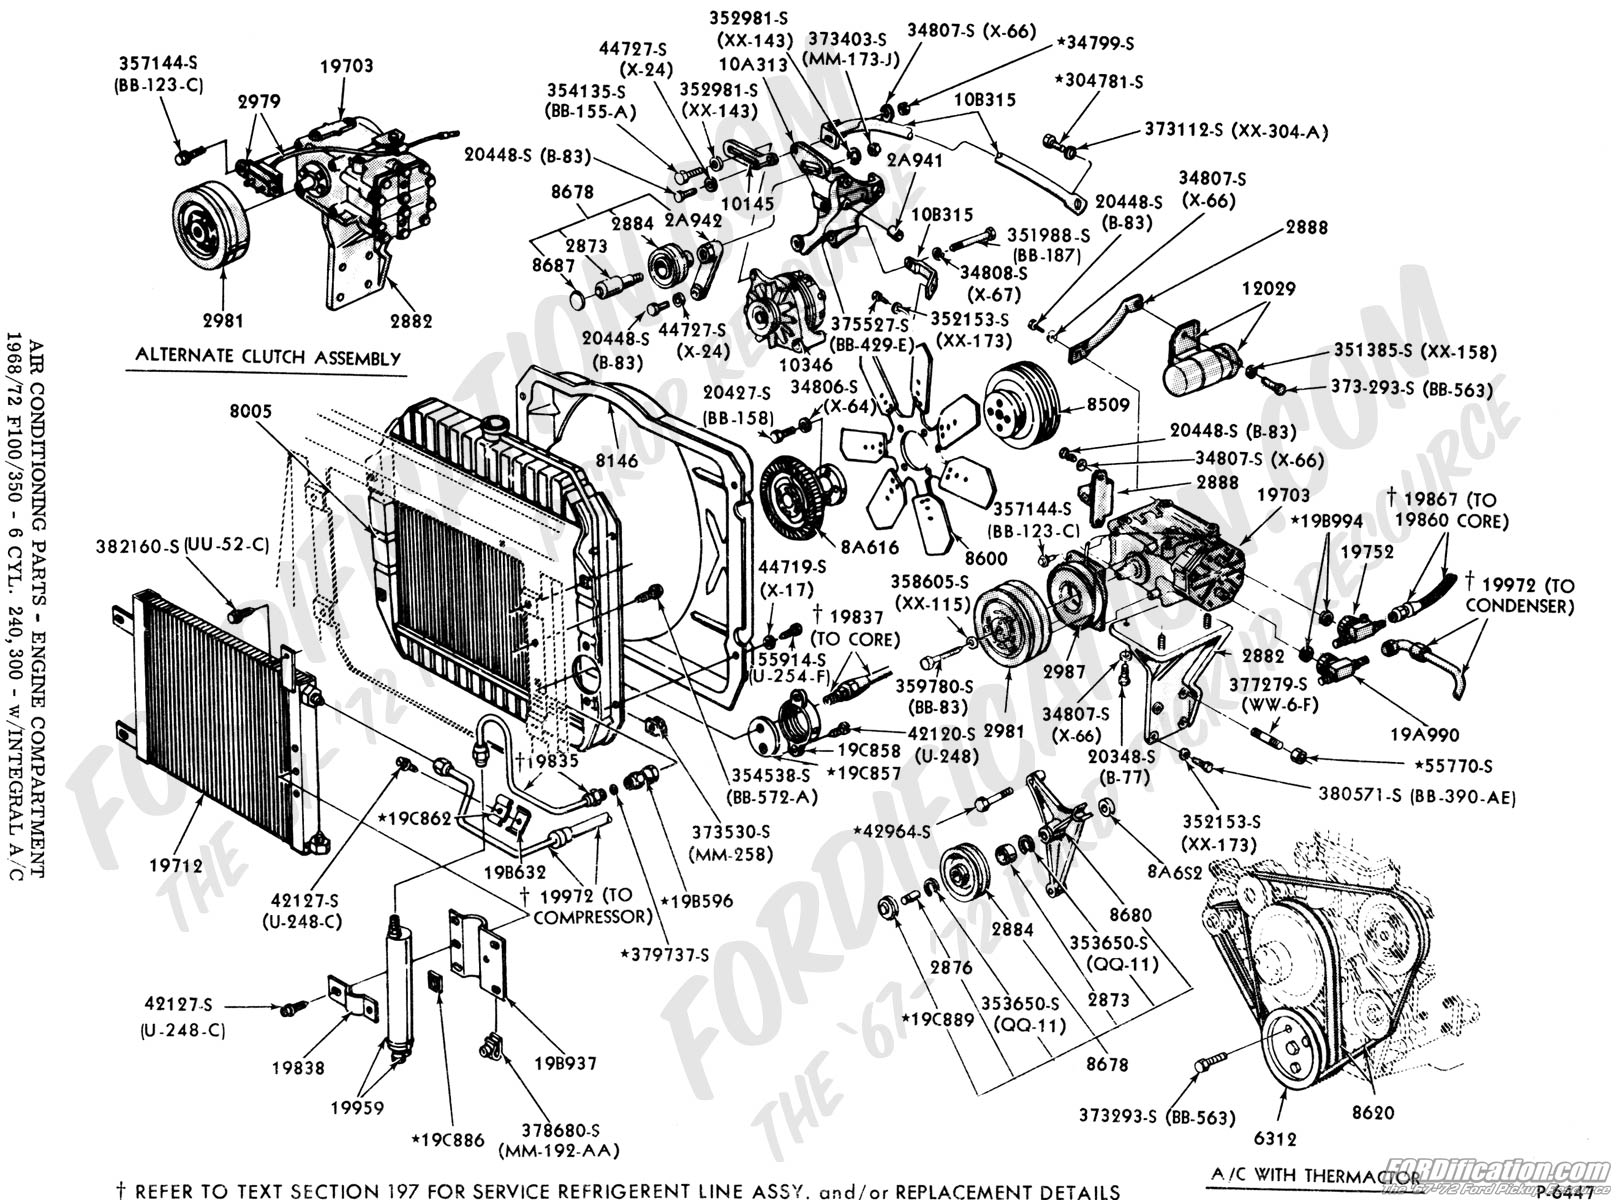 Chevy Duramax Fuel System Diagram